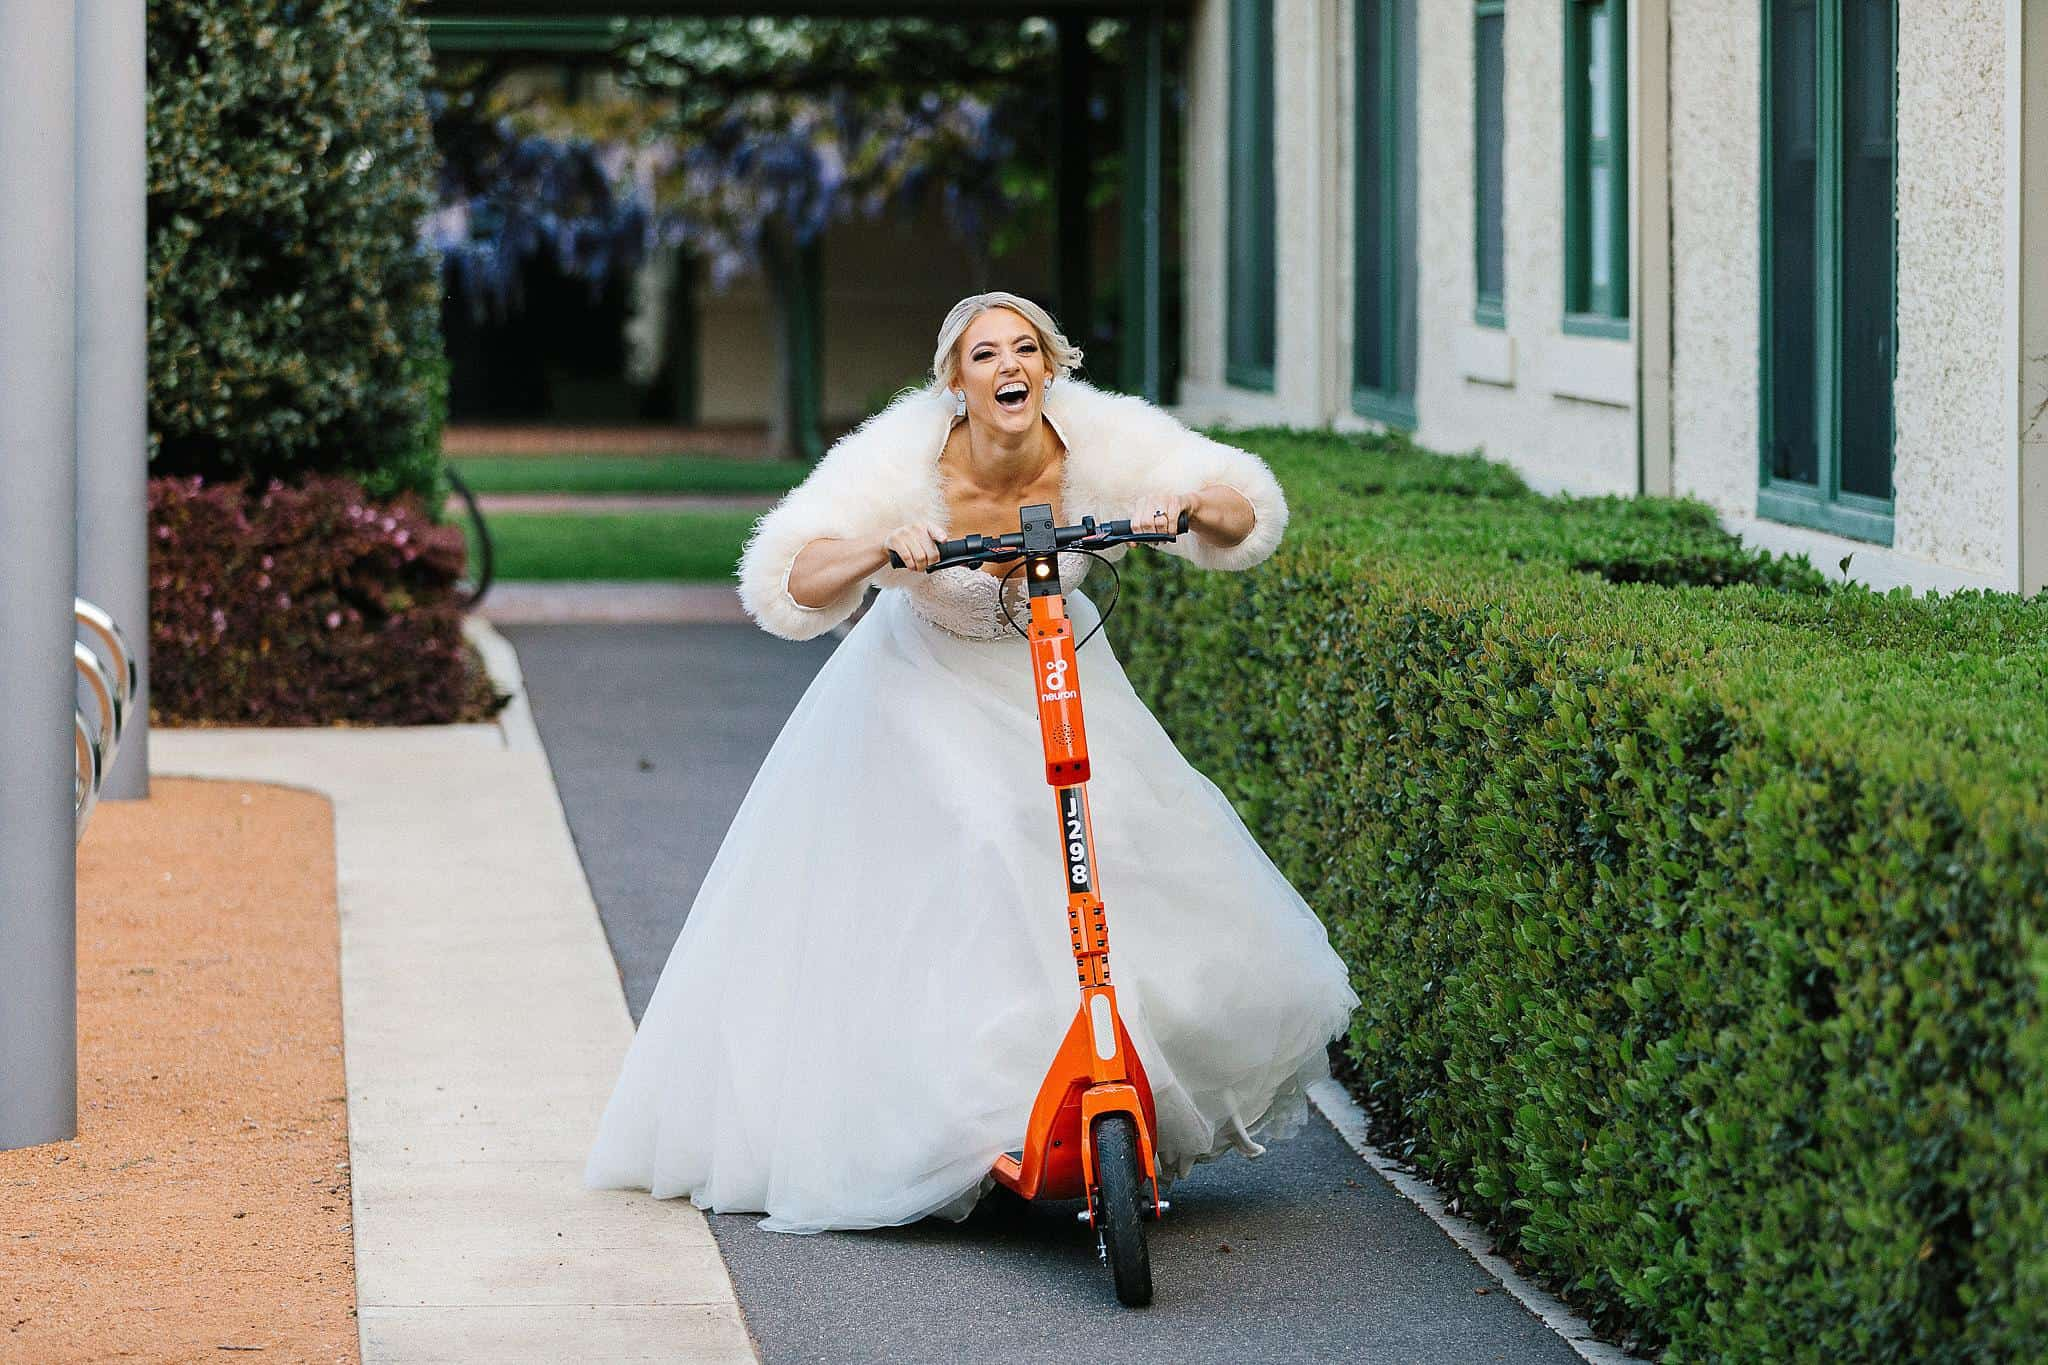 Bride rides scooter in wedding dress